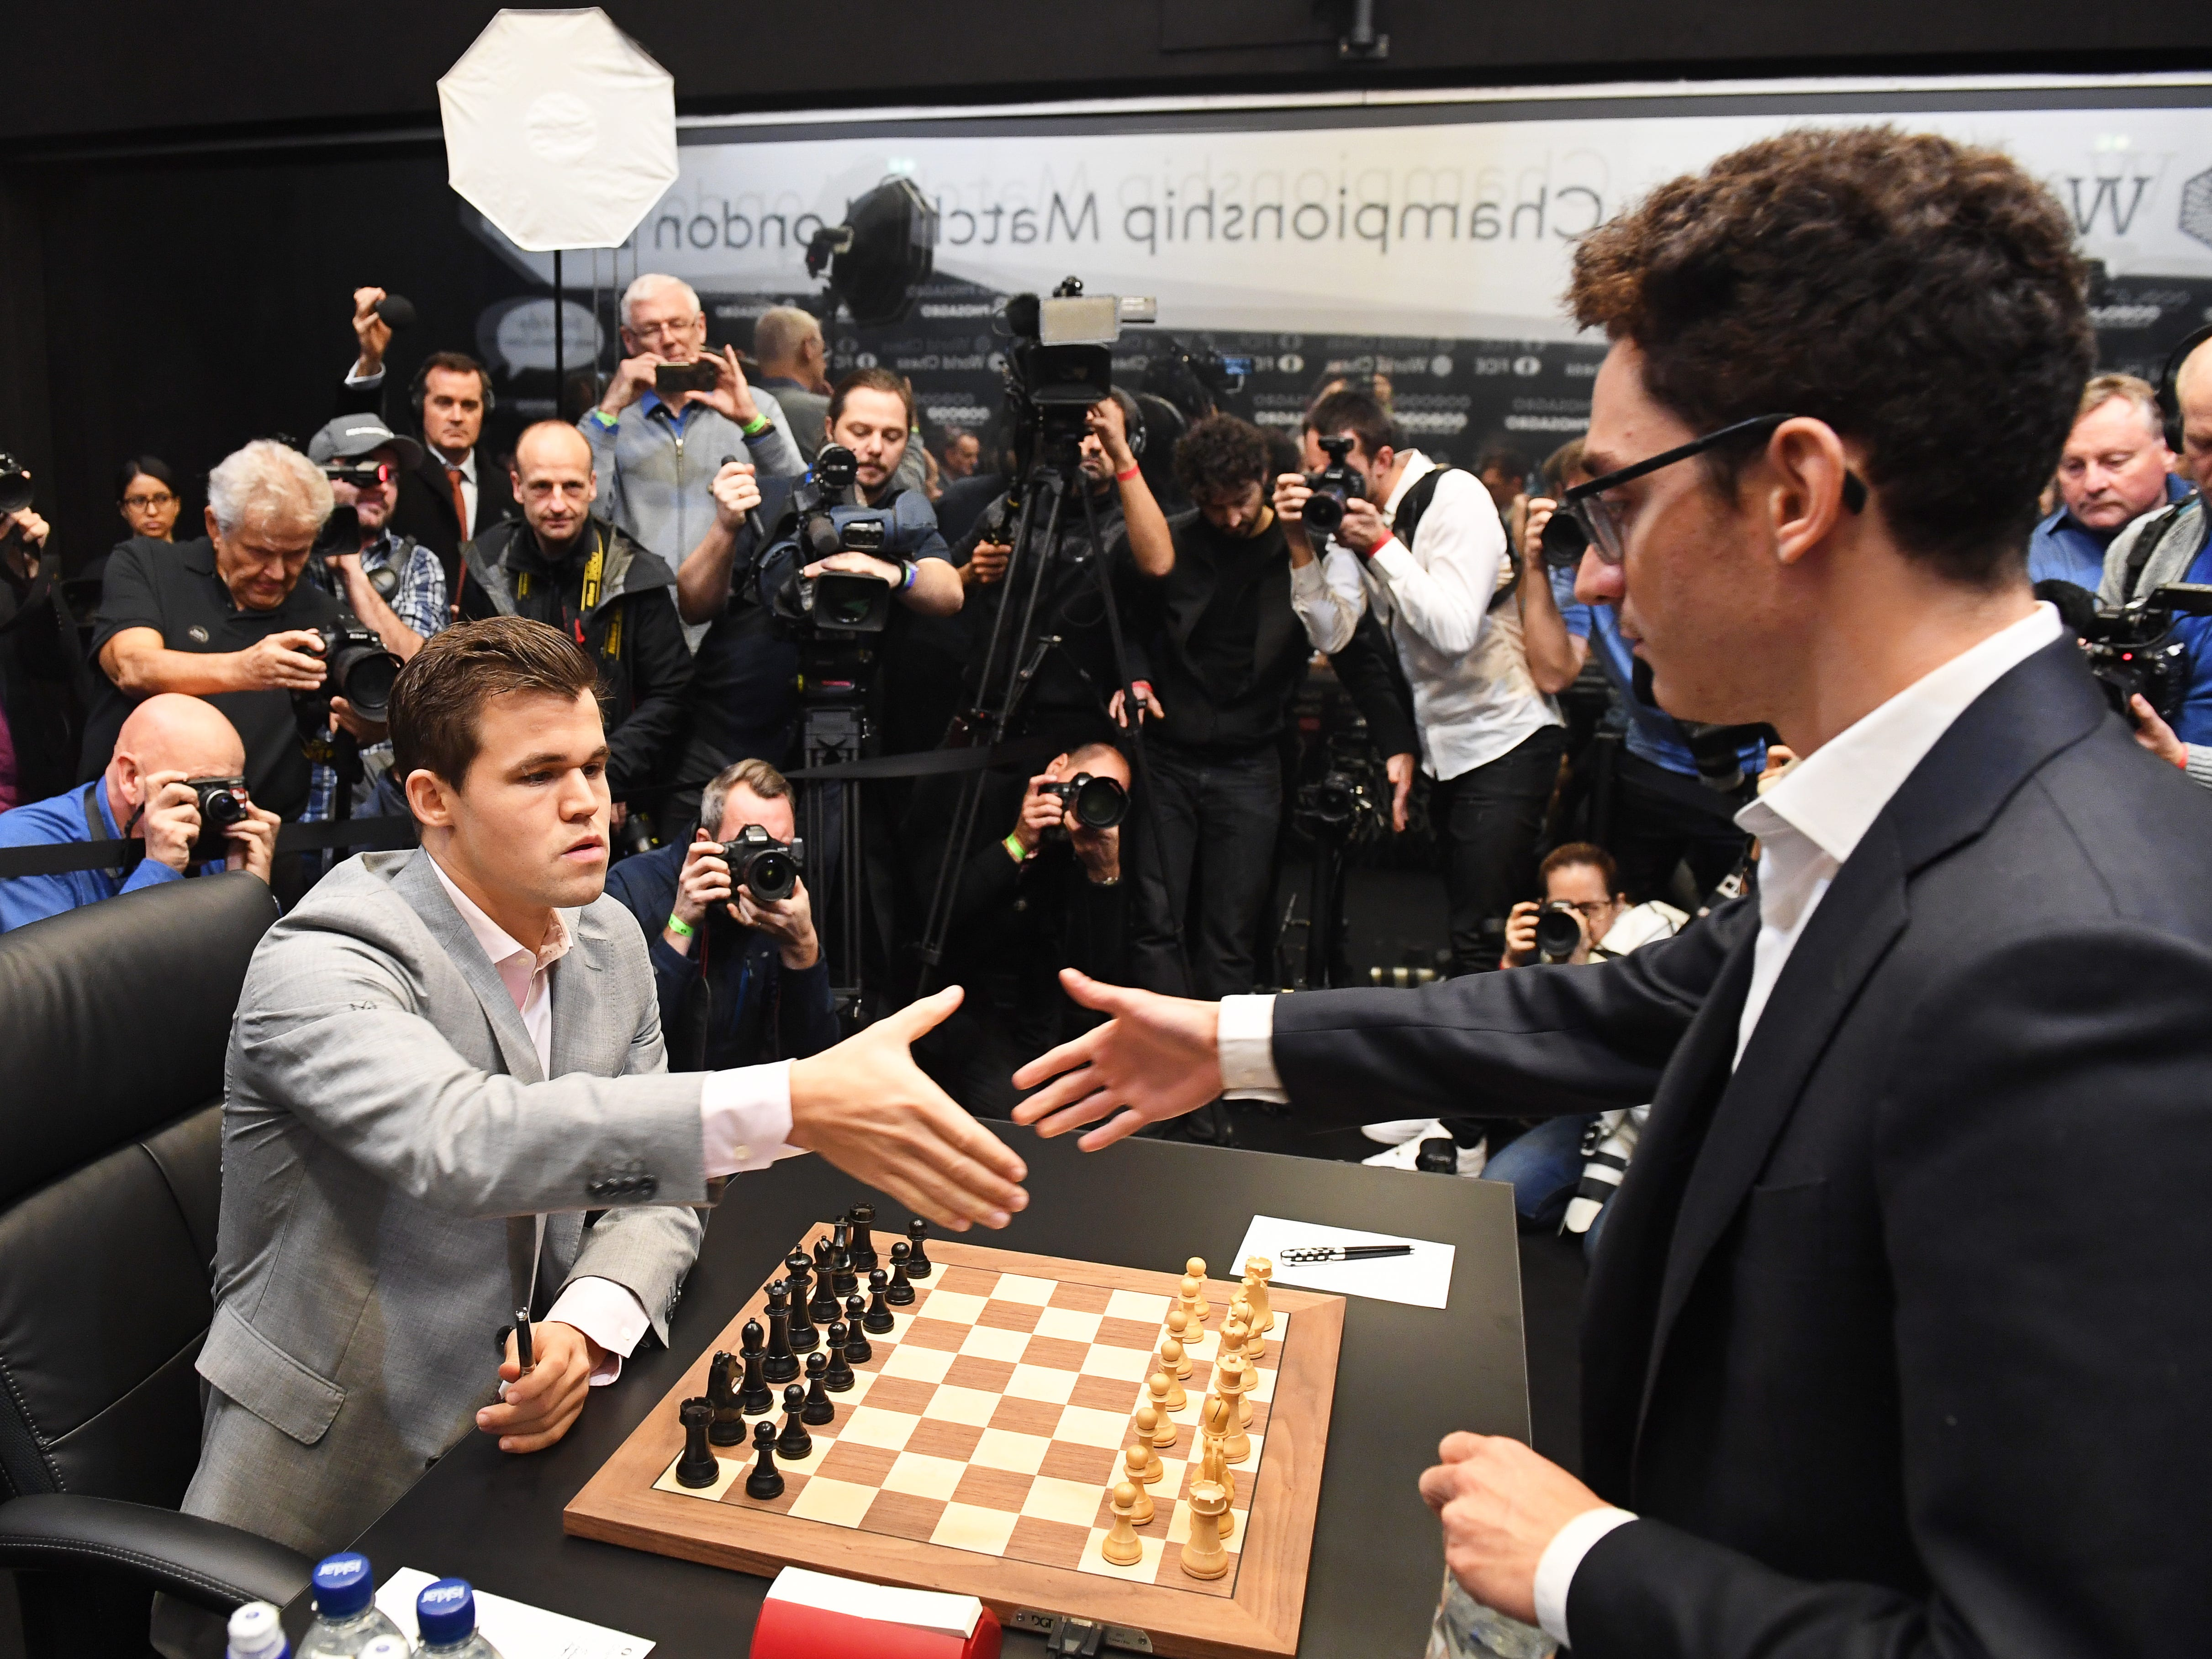 Reigning chess world champion Magnus Carlsen, left, shake hands with American challenger Fabiano Caruana before their round 12 game during their World Chess Championship, Nov. 26, 2018, in London.